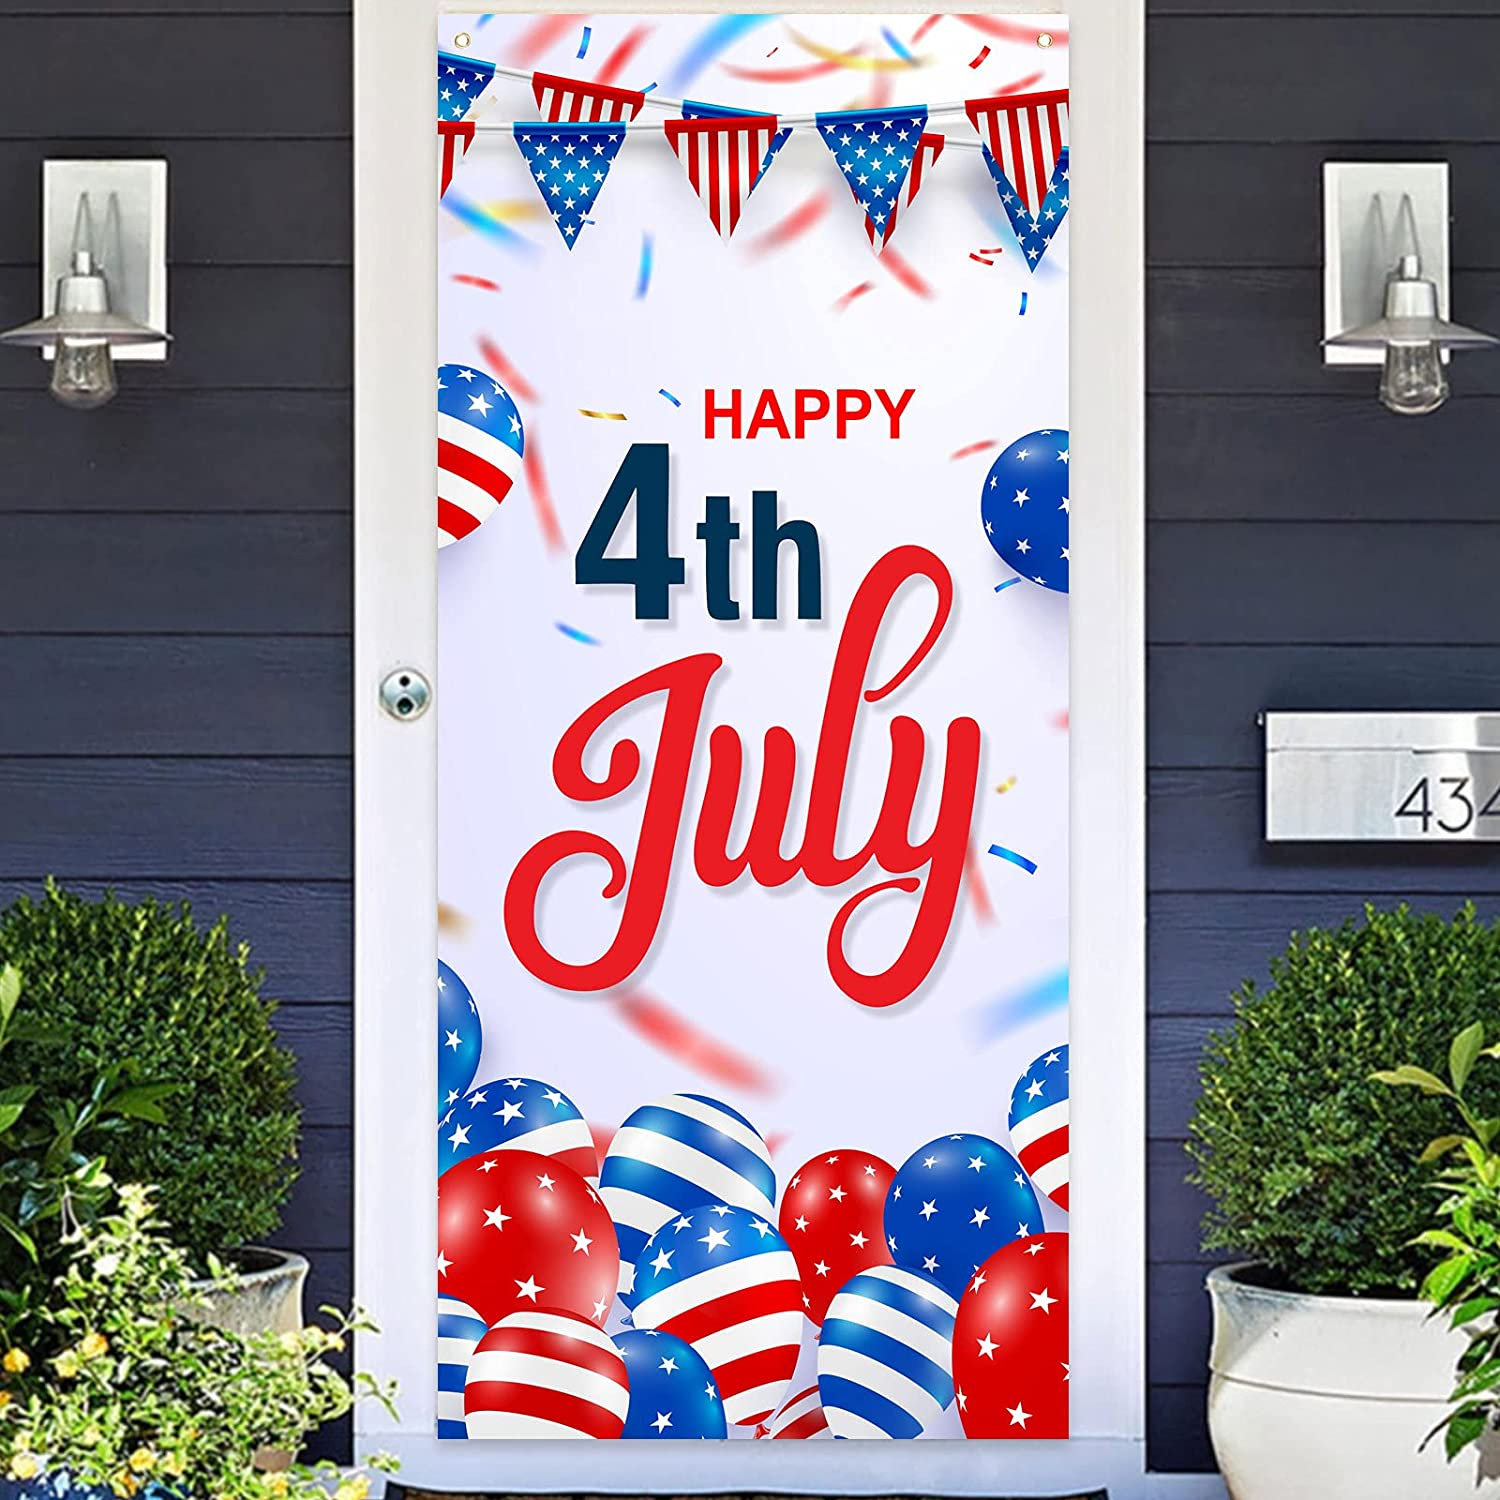 Happy 4th of July Banner Backdrop Red Quantity limited White B Blue New Shipping Free Shipping Stripes Stars